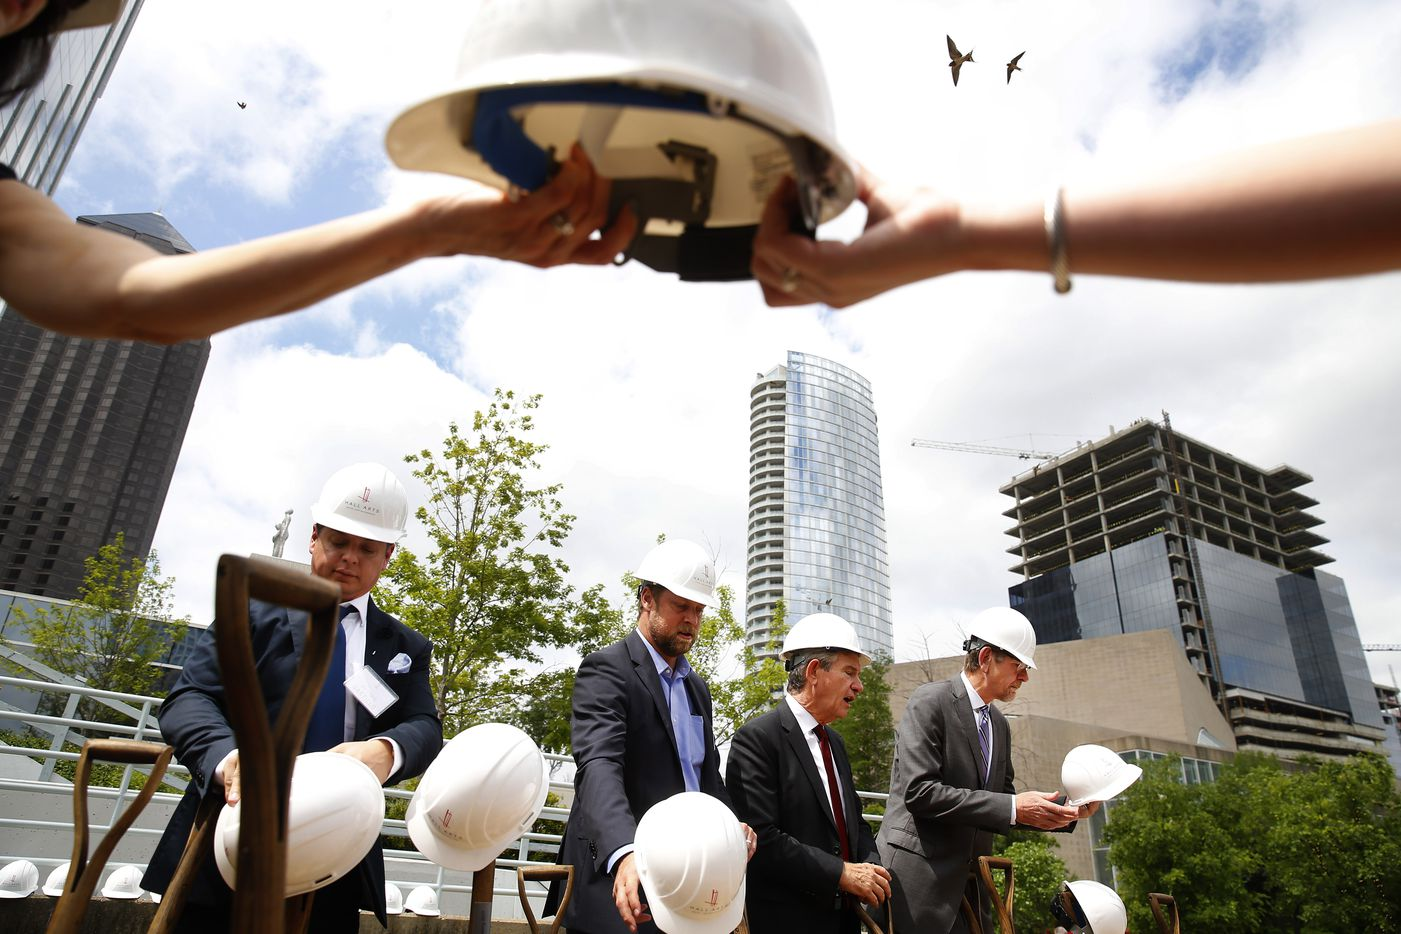 Helmets are passed during a photo opportunity during the ground breaking ceremony on Hall Arts Hotel and Residences.